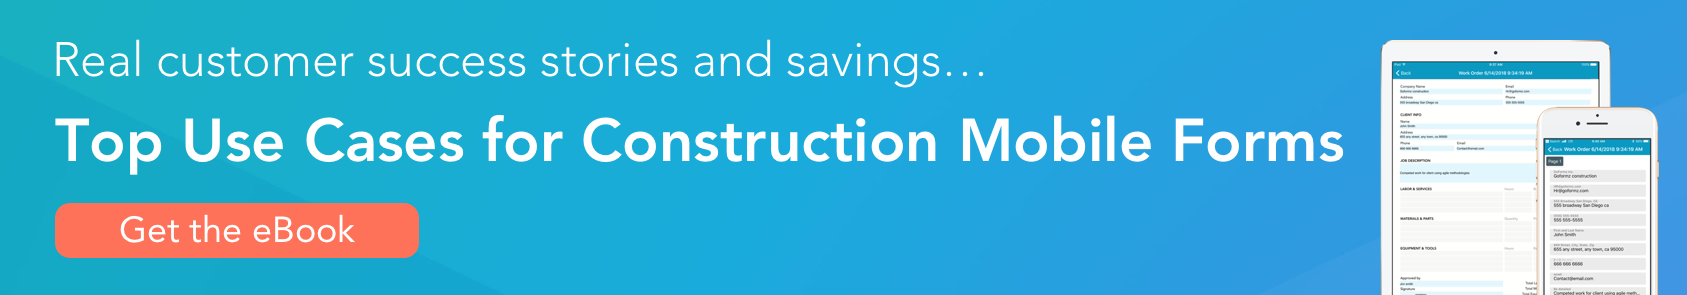 Click here to explore the top use cases for construction mobile forms